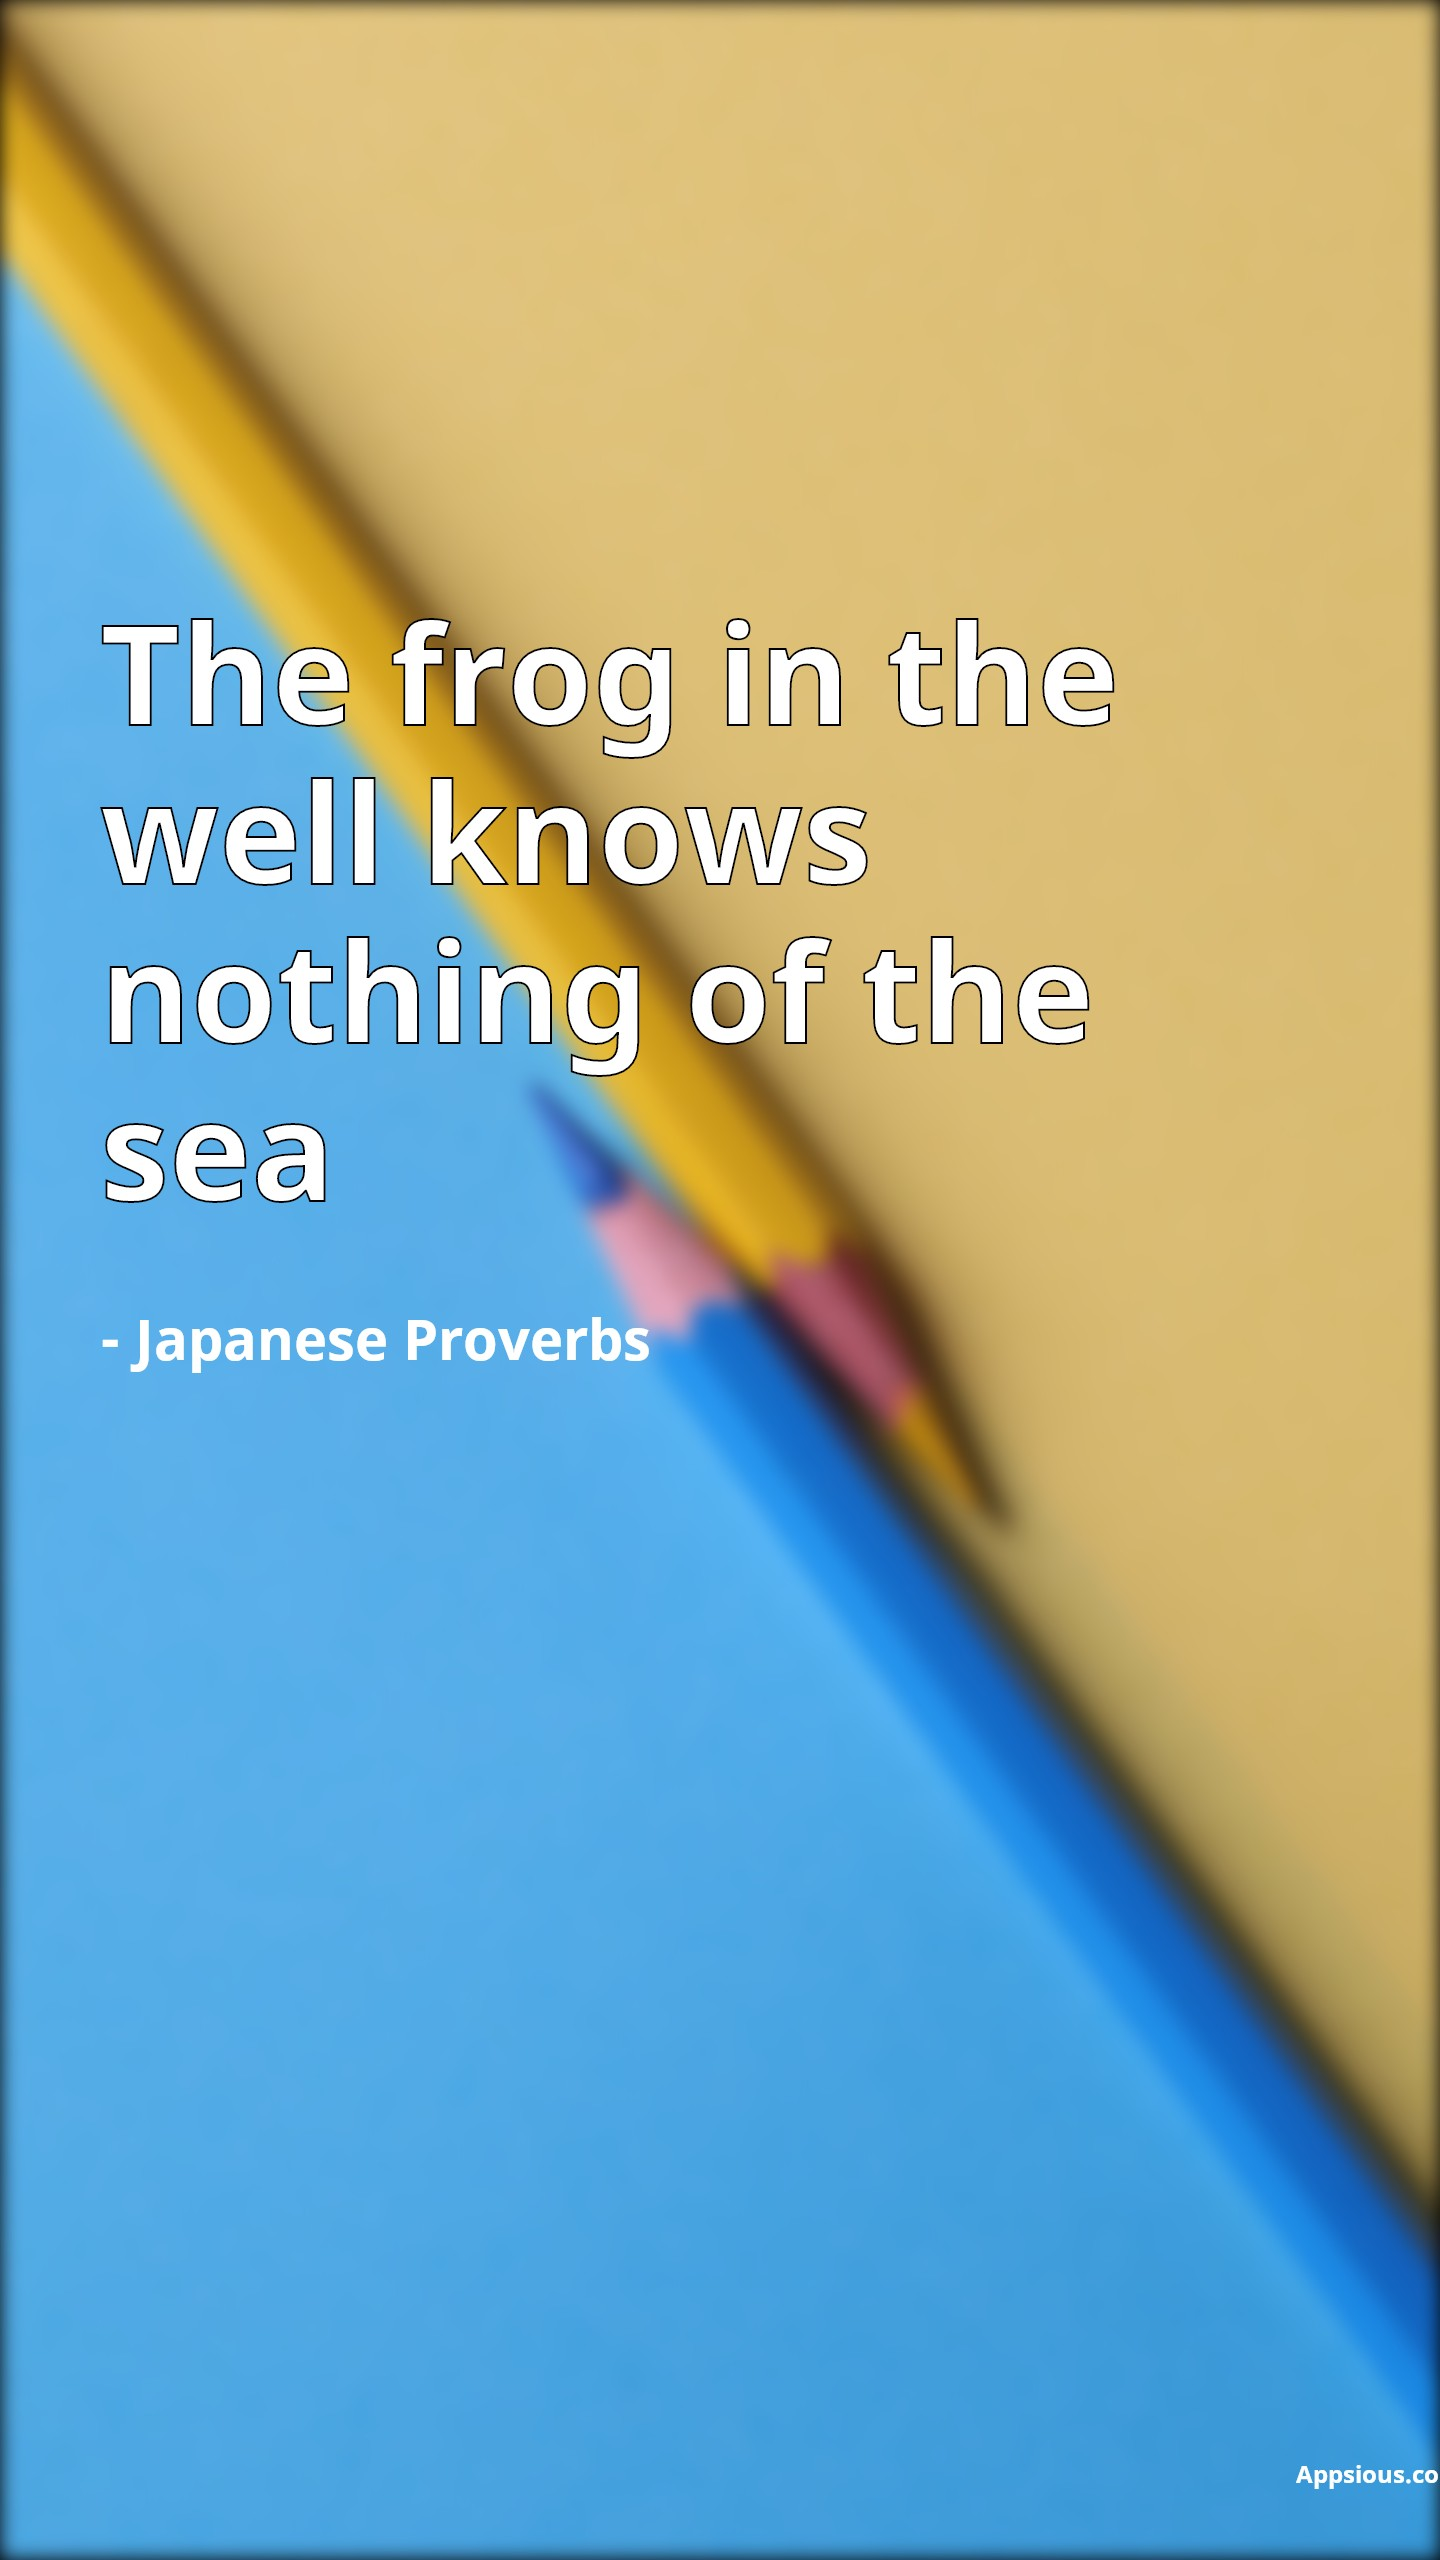 The frog in the well knows nothing of the sea